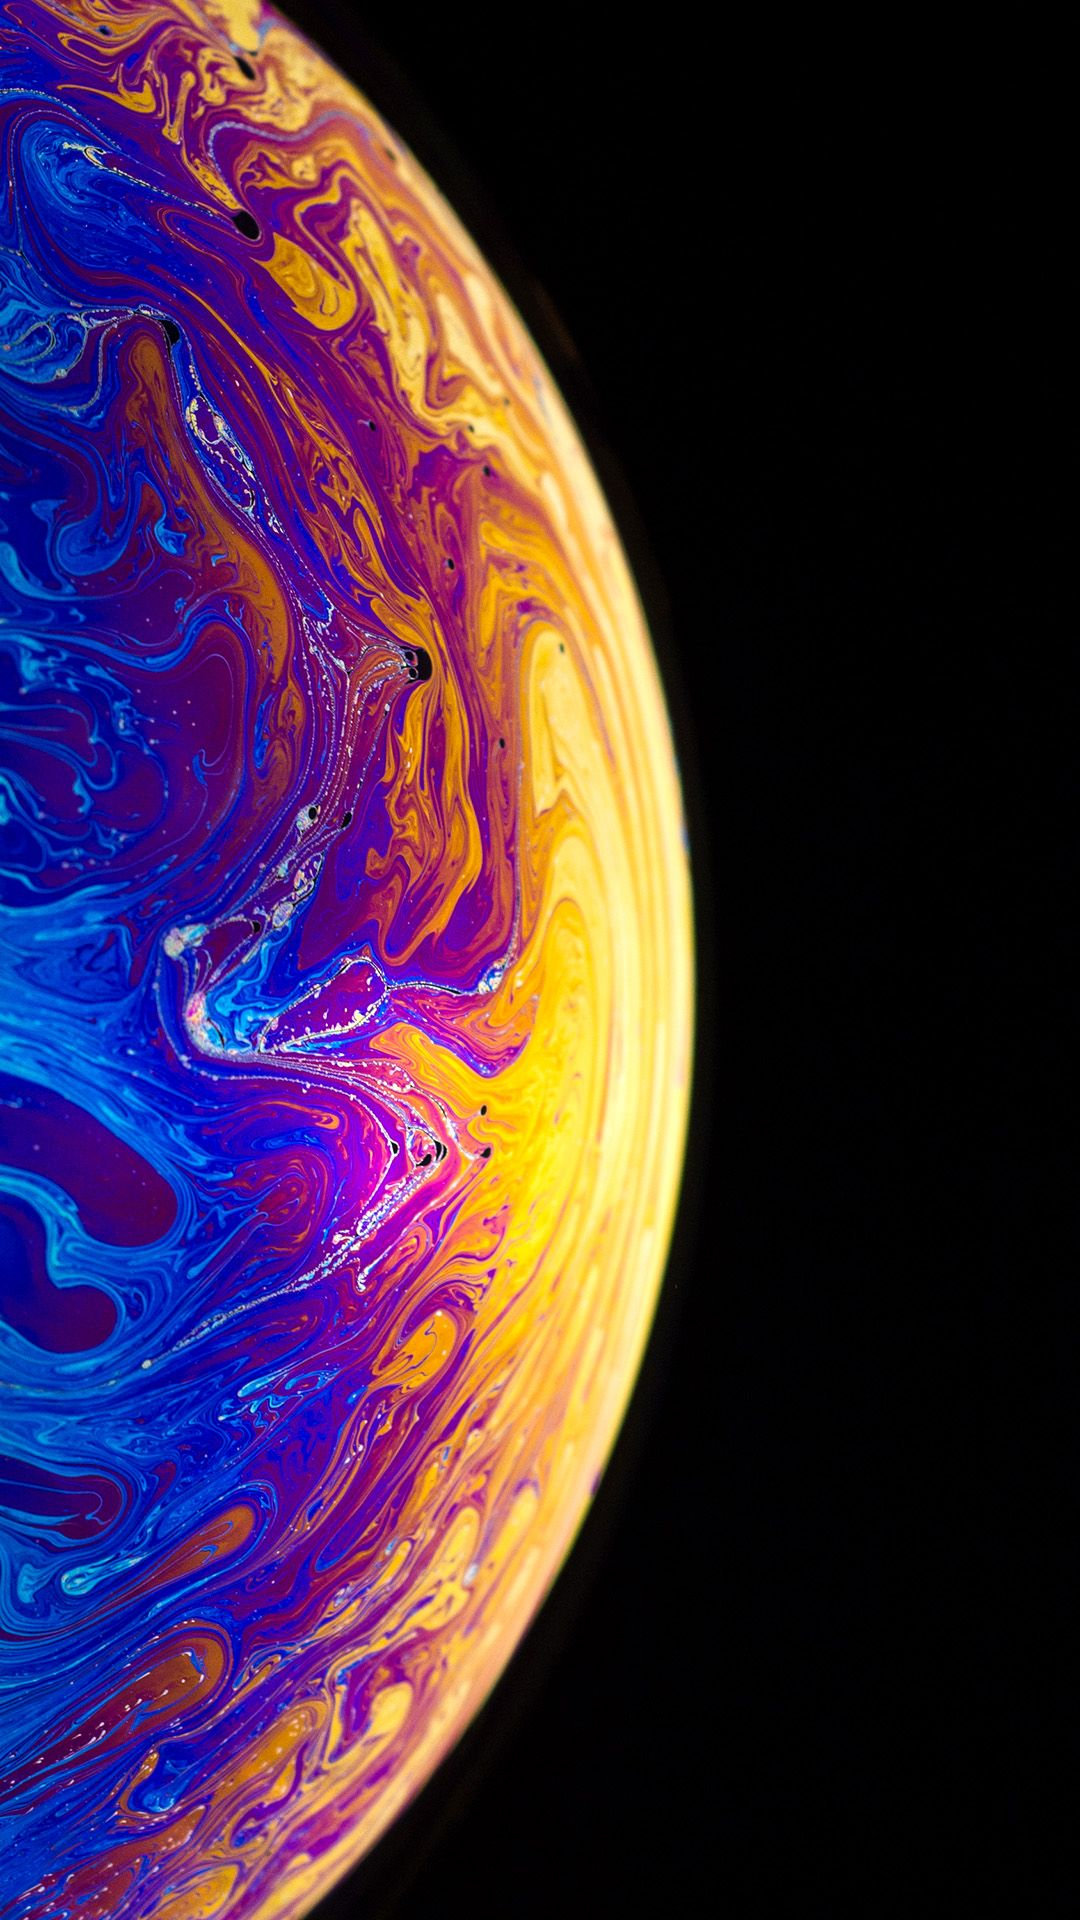 New Live #Wallpapers for #iPhone Xs!